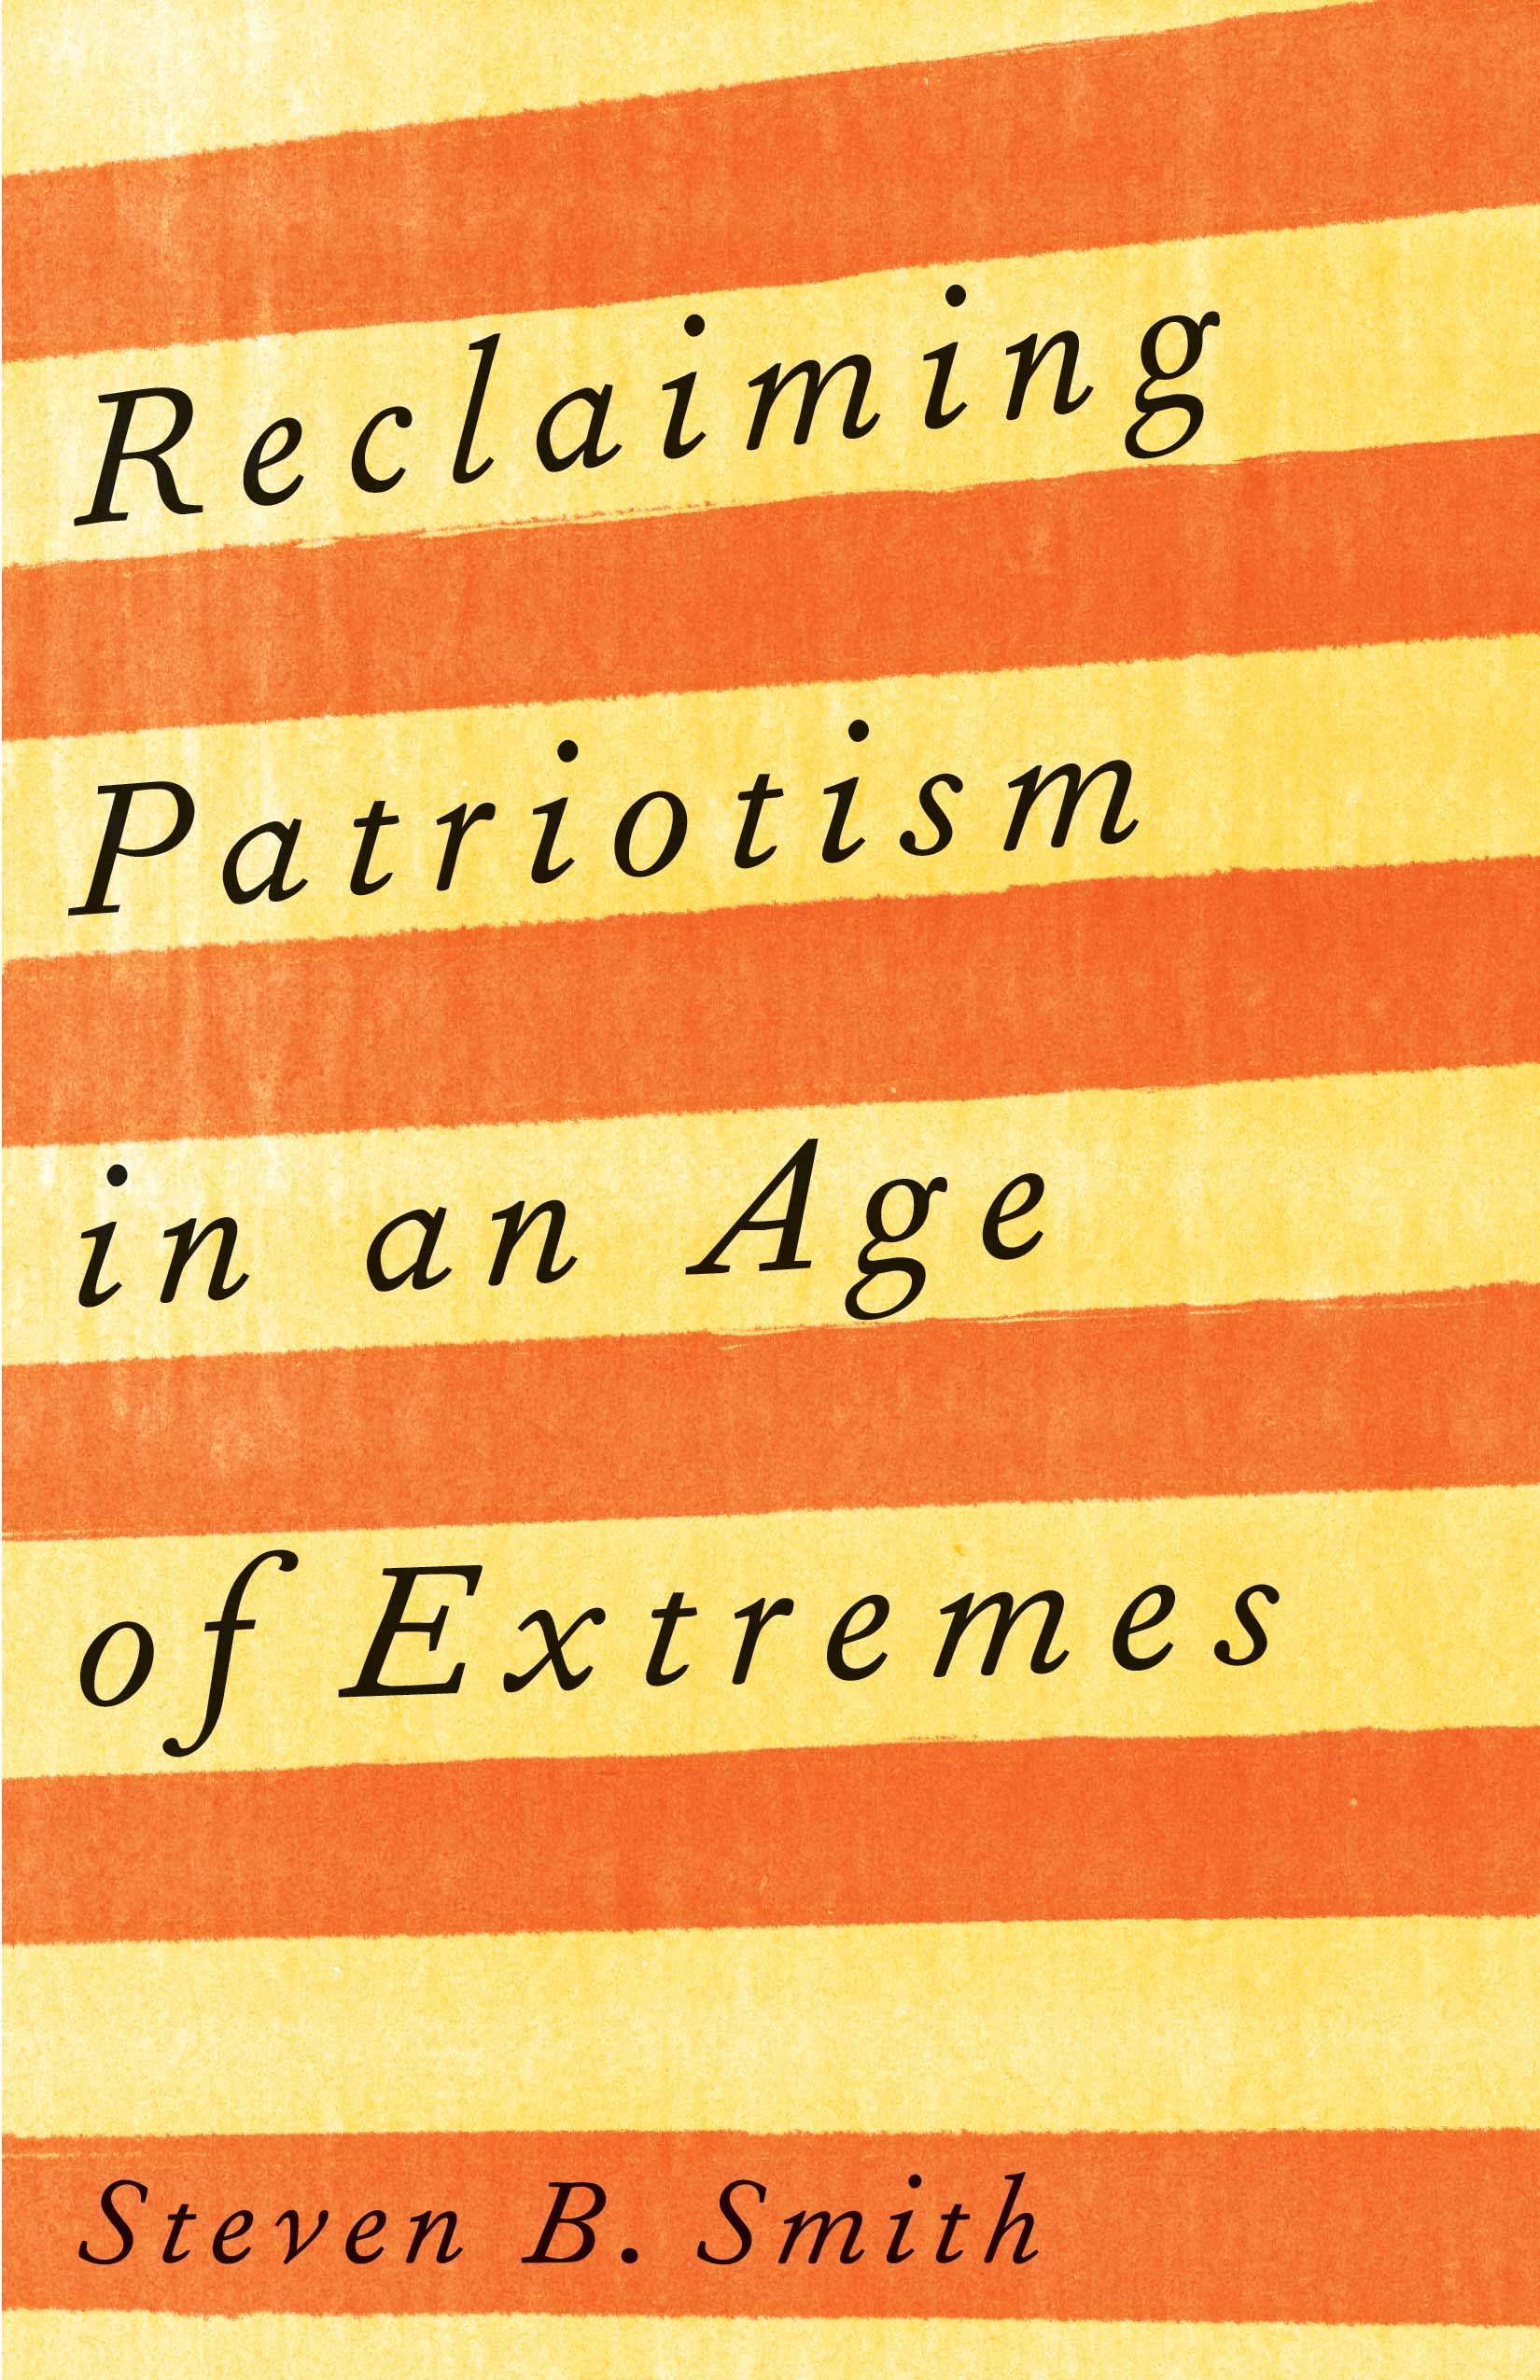 Book Review: 'Reclaiming Patriotism in an Age of Extremes' by Steven B. Smith